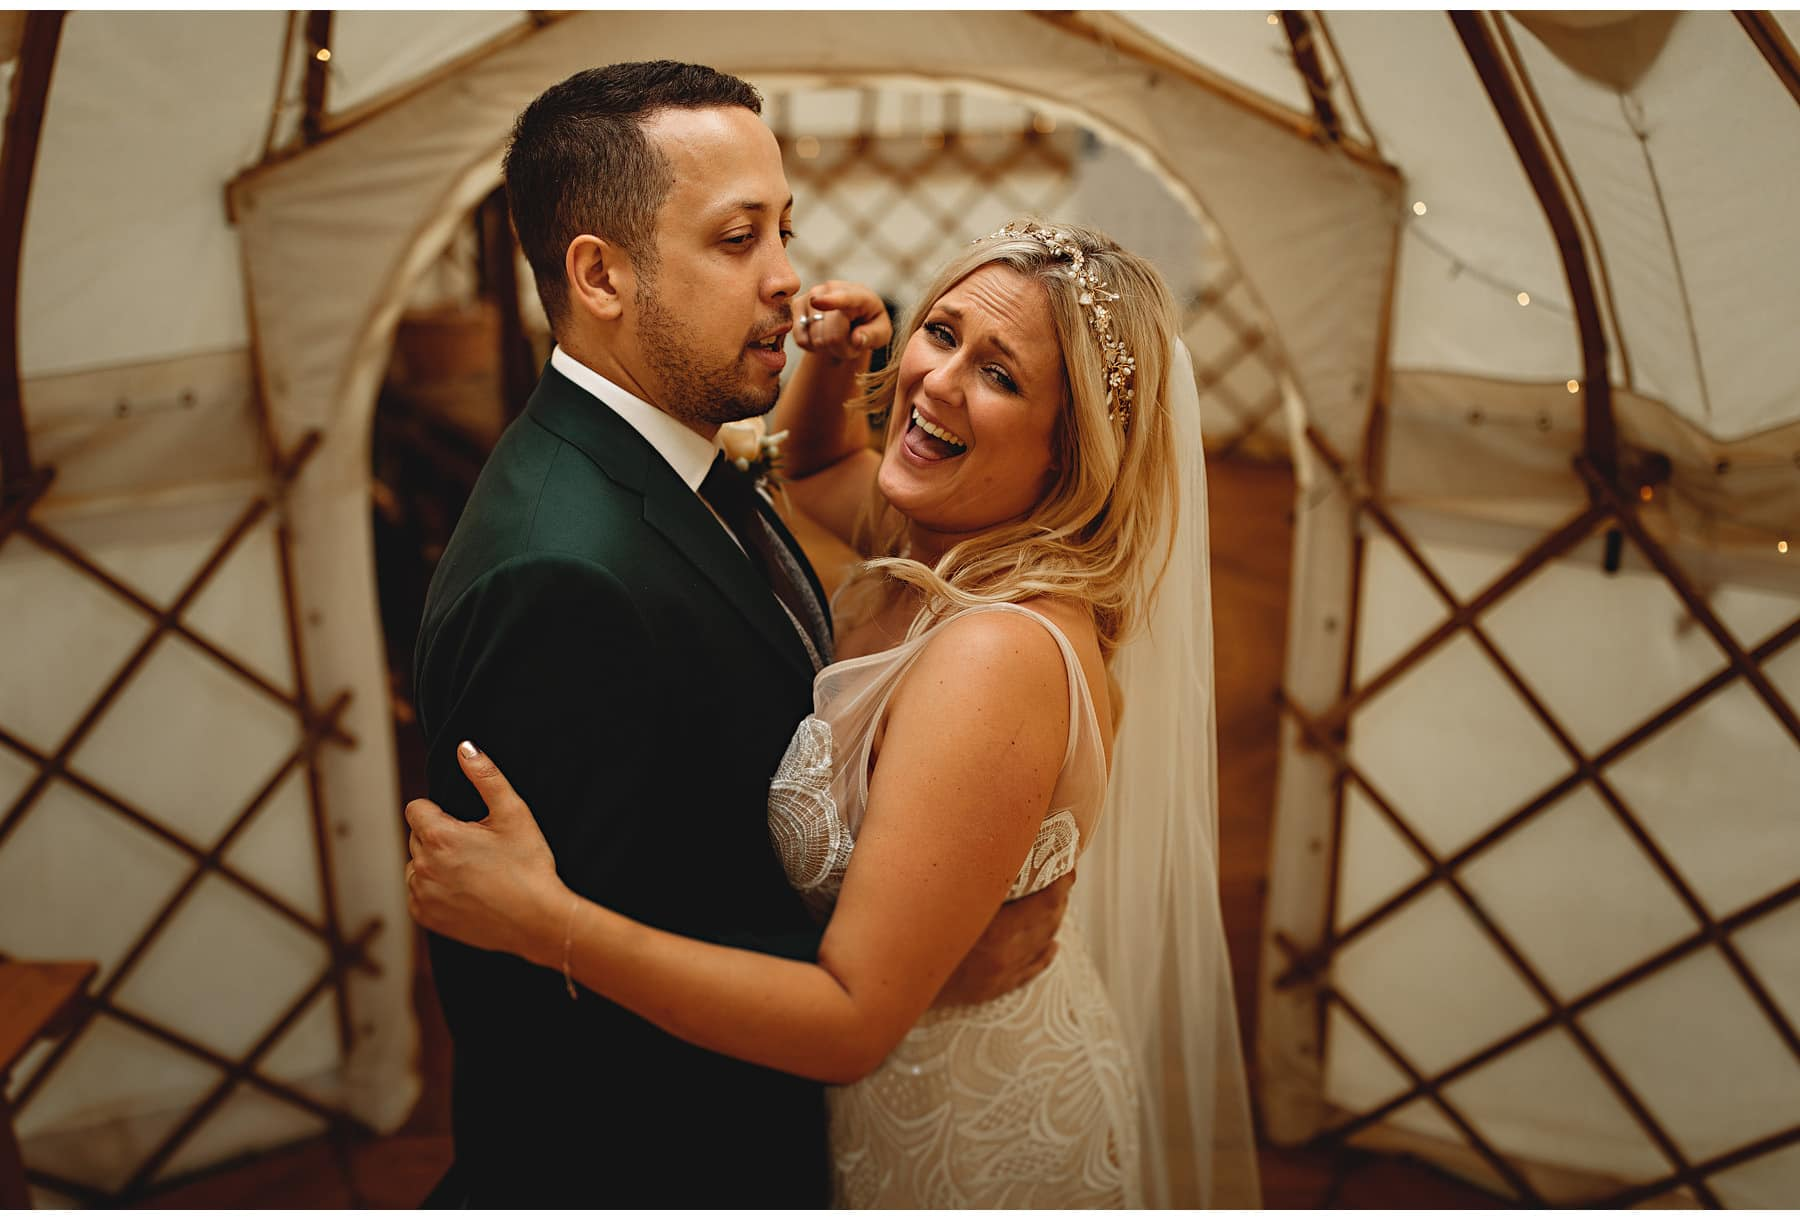 The bride & groom in the yurt